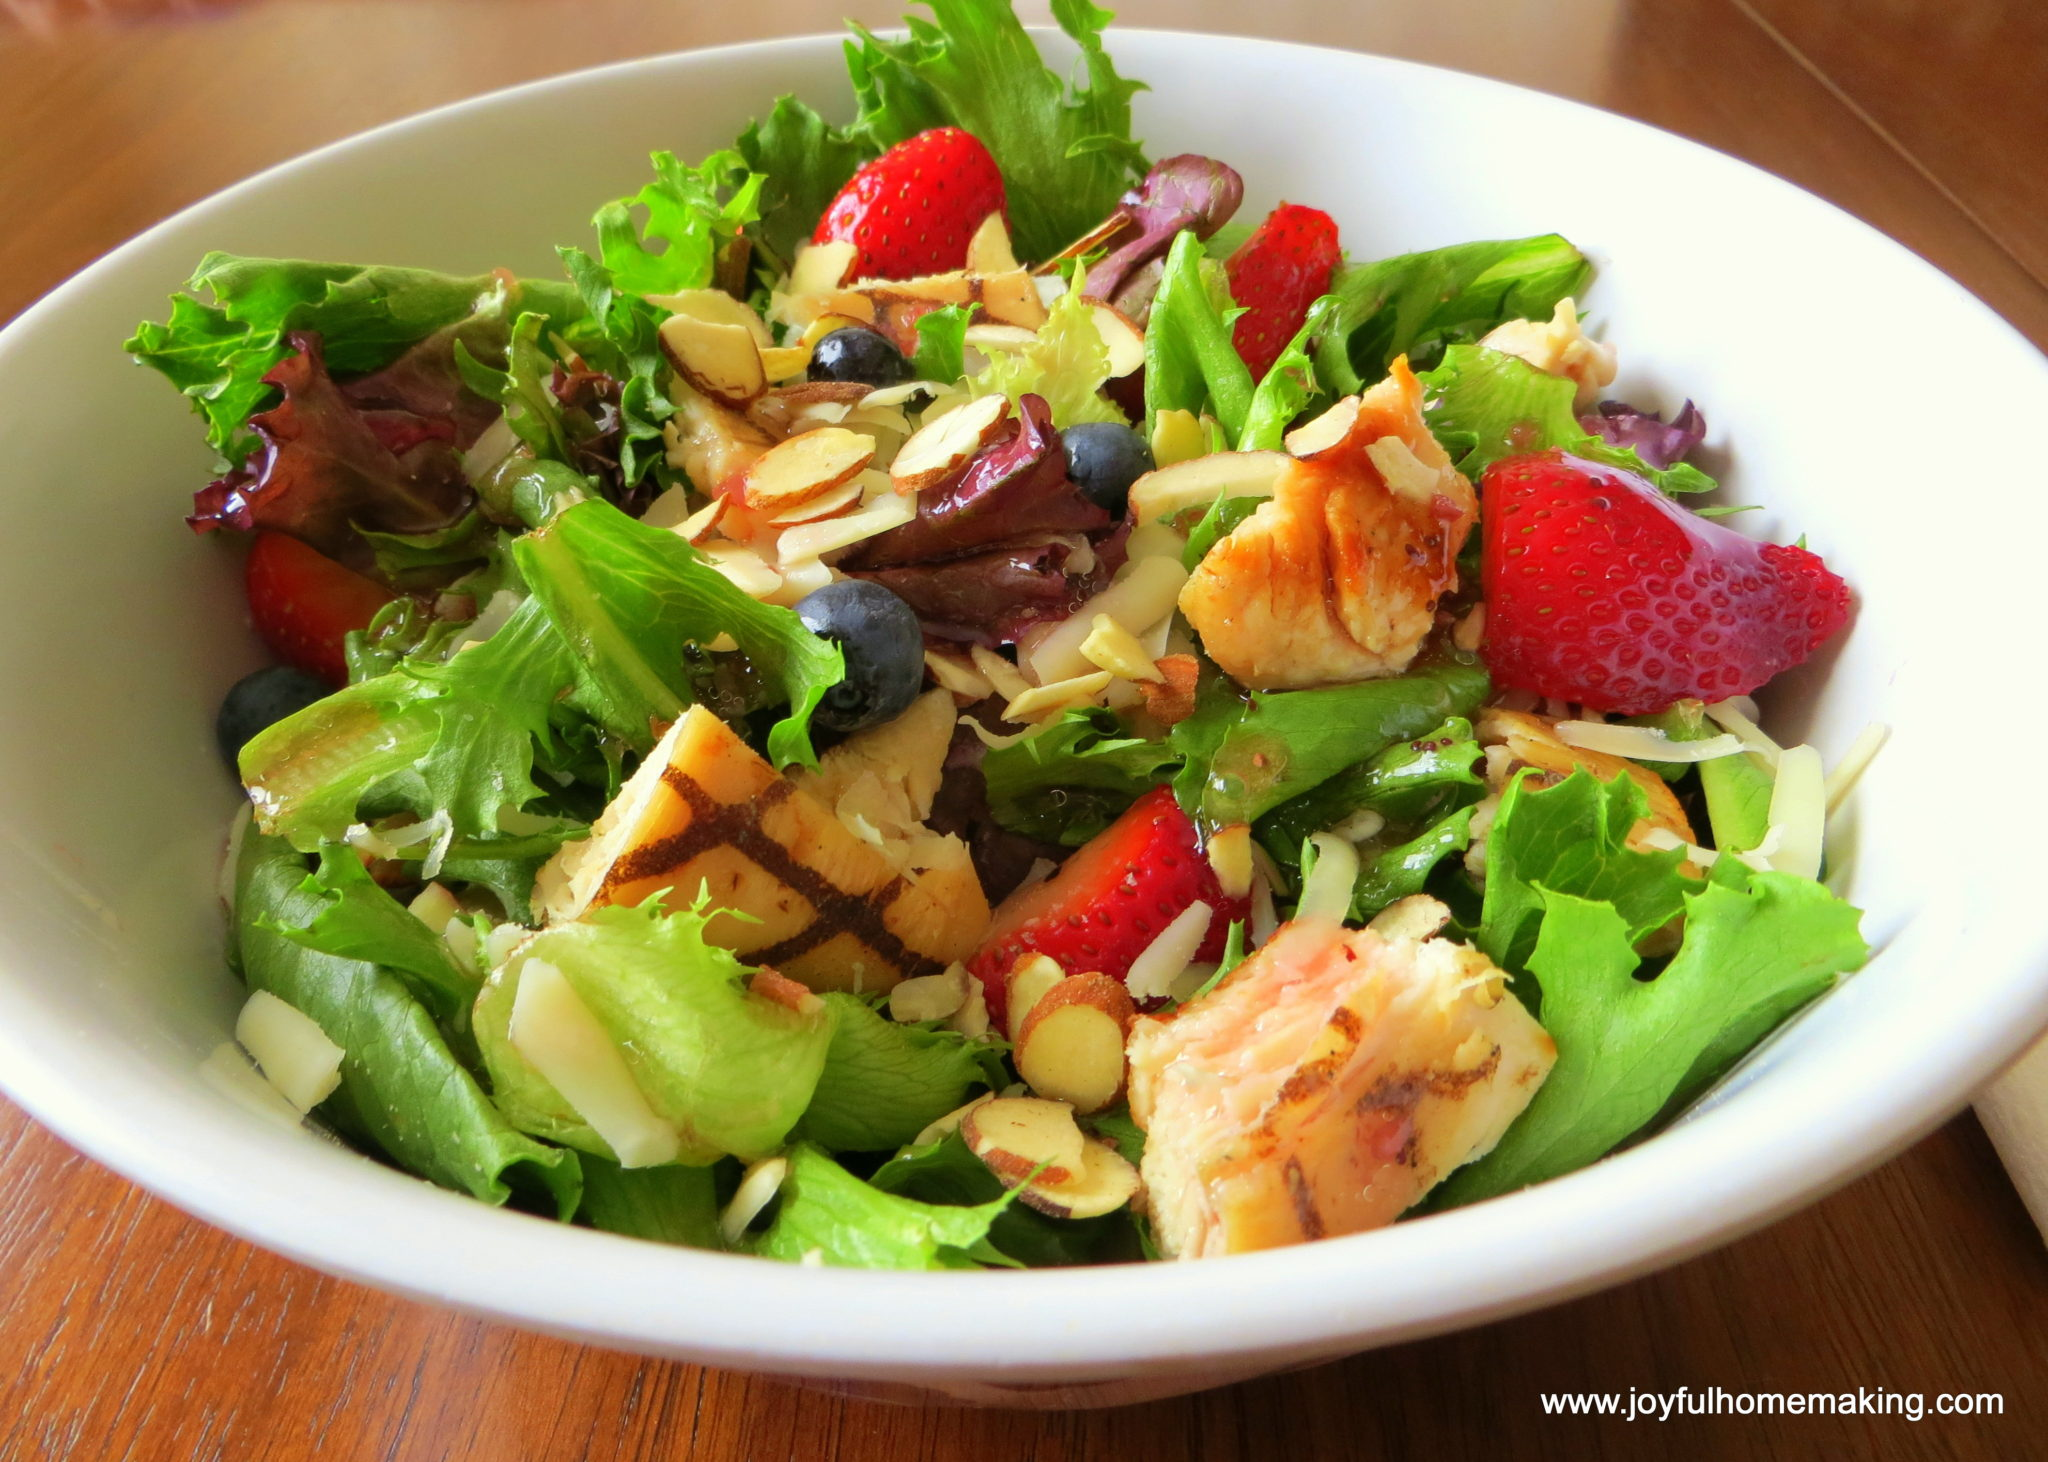 031 004 1024x730 Wendys Copycat Berry Almond Chicken Salad